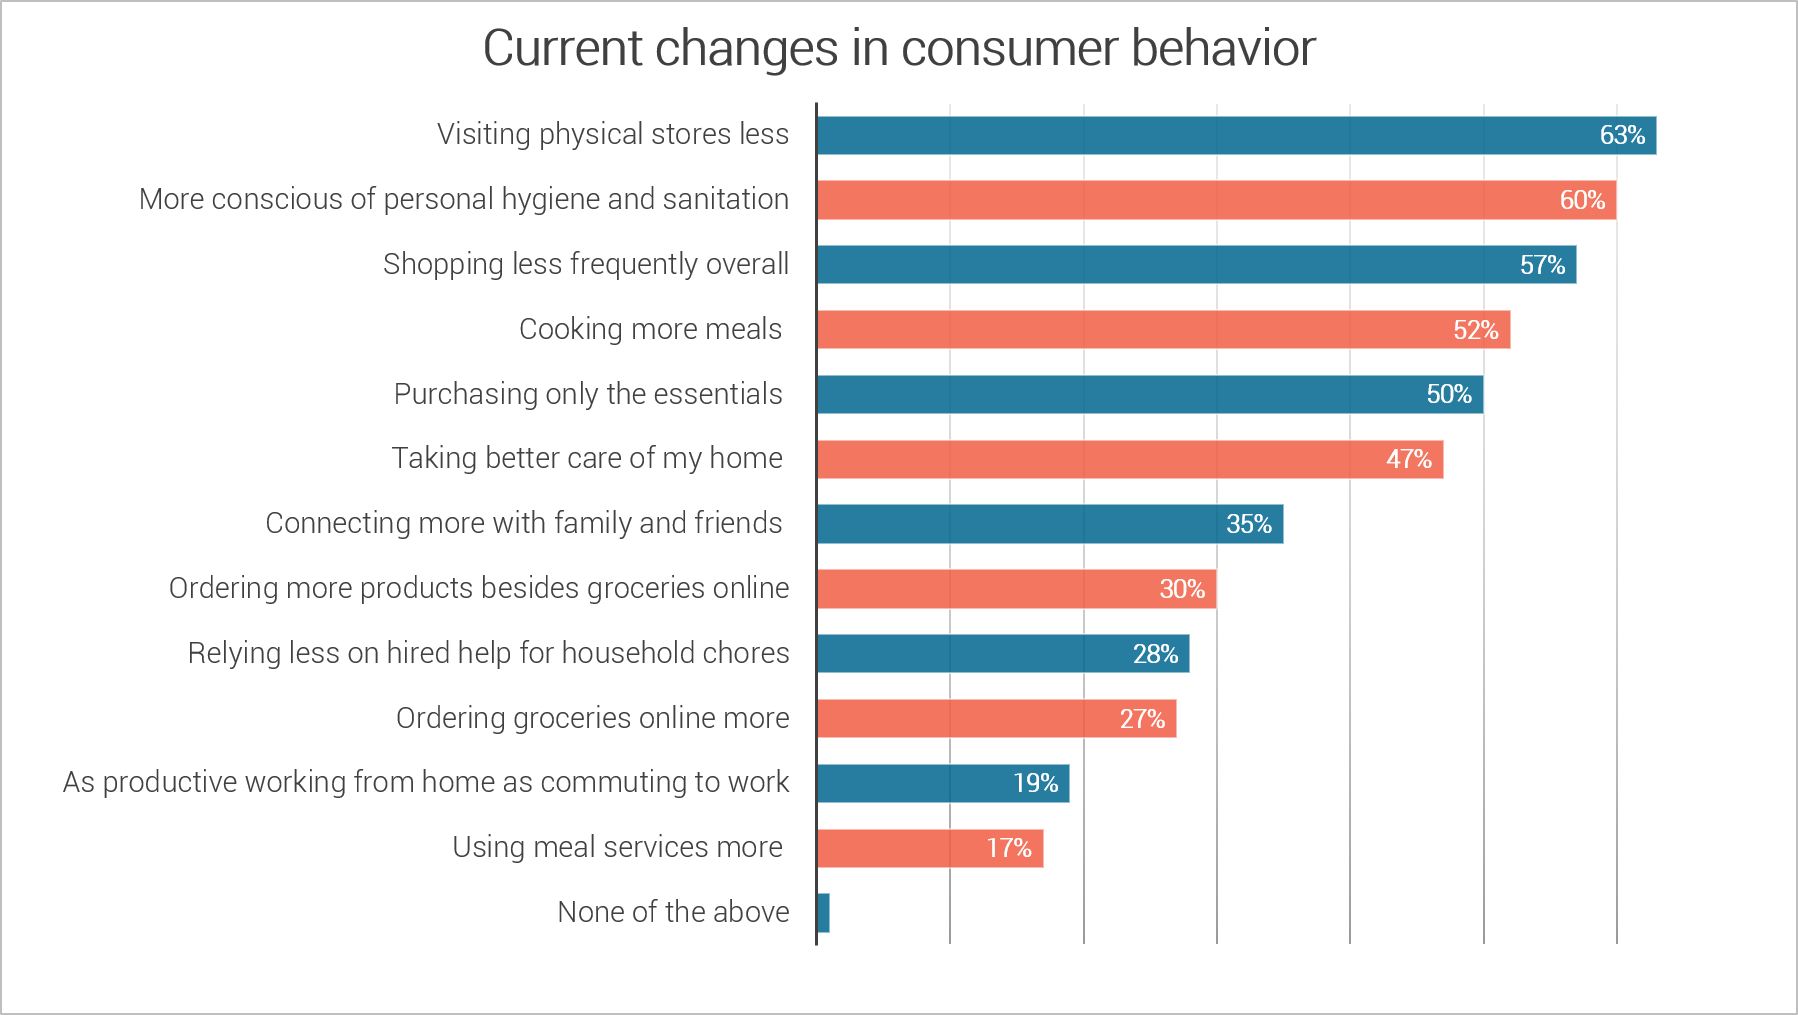 Changes to consumer behavior